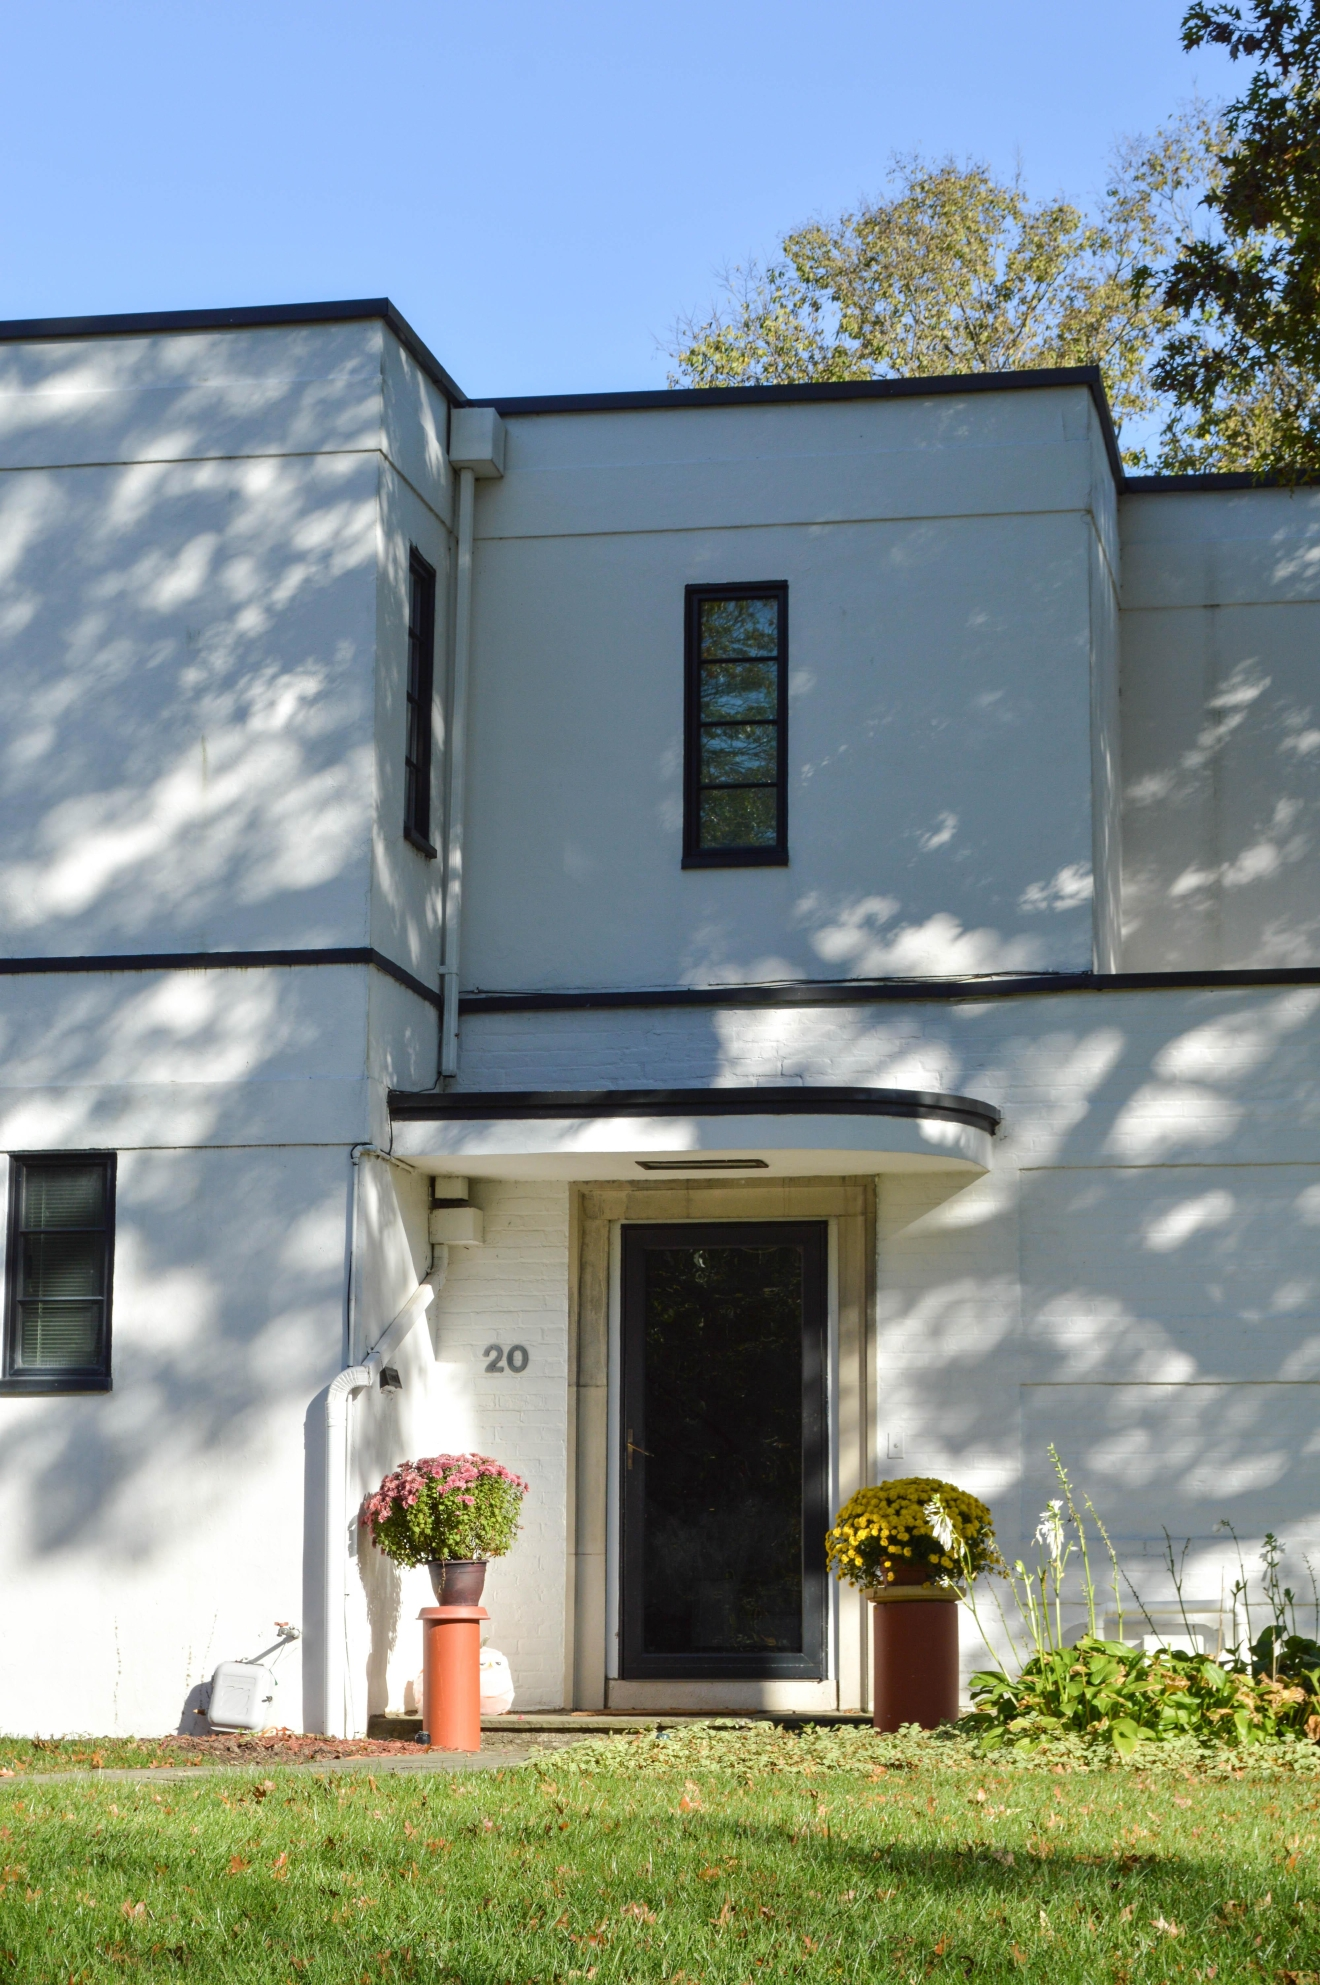 An art deco home from the 1930s. The Mansions of Clifton Tour was hosted by Photocorps on Sunday, Oct. 23. The tour began at the Clifton Cultural Arts Center. / IMAGE: Liliana Dillingham / PUBLISHED: 11.9.16